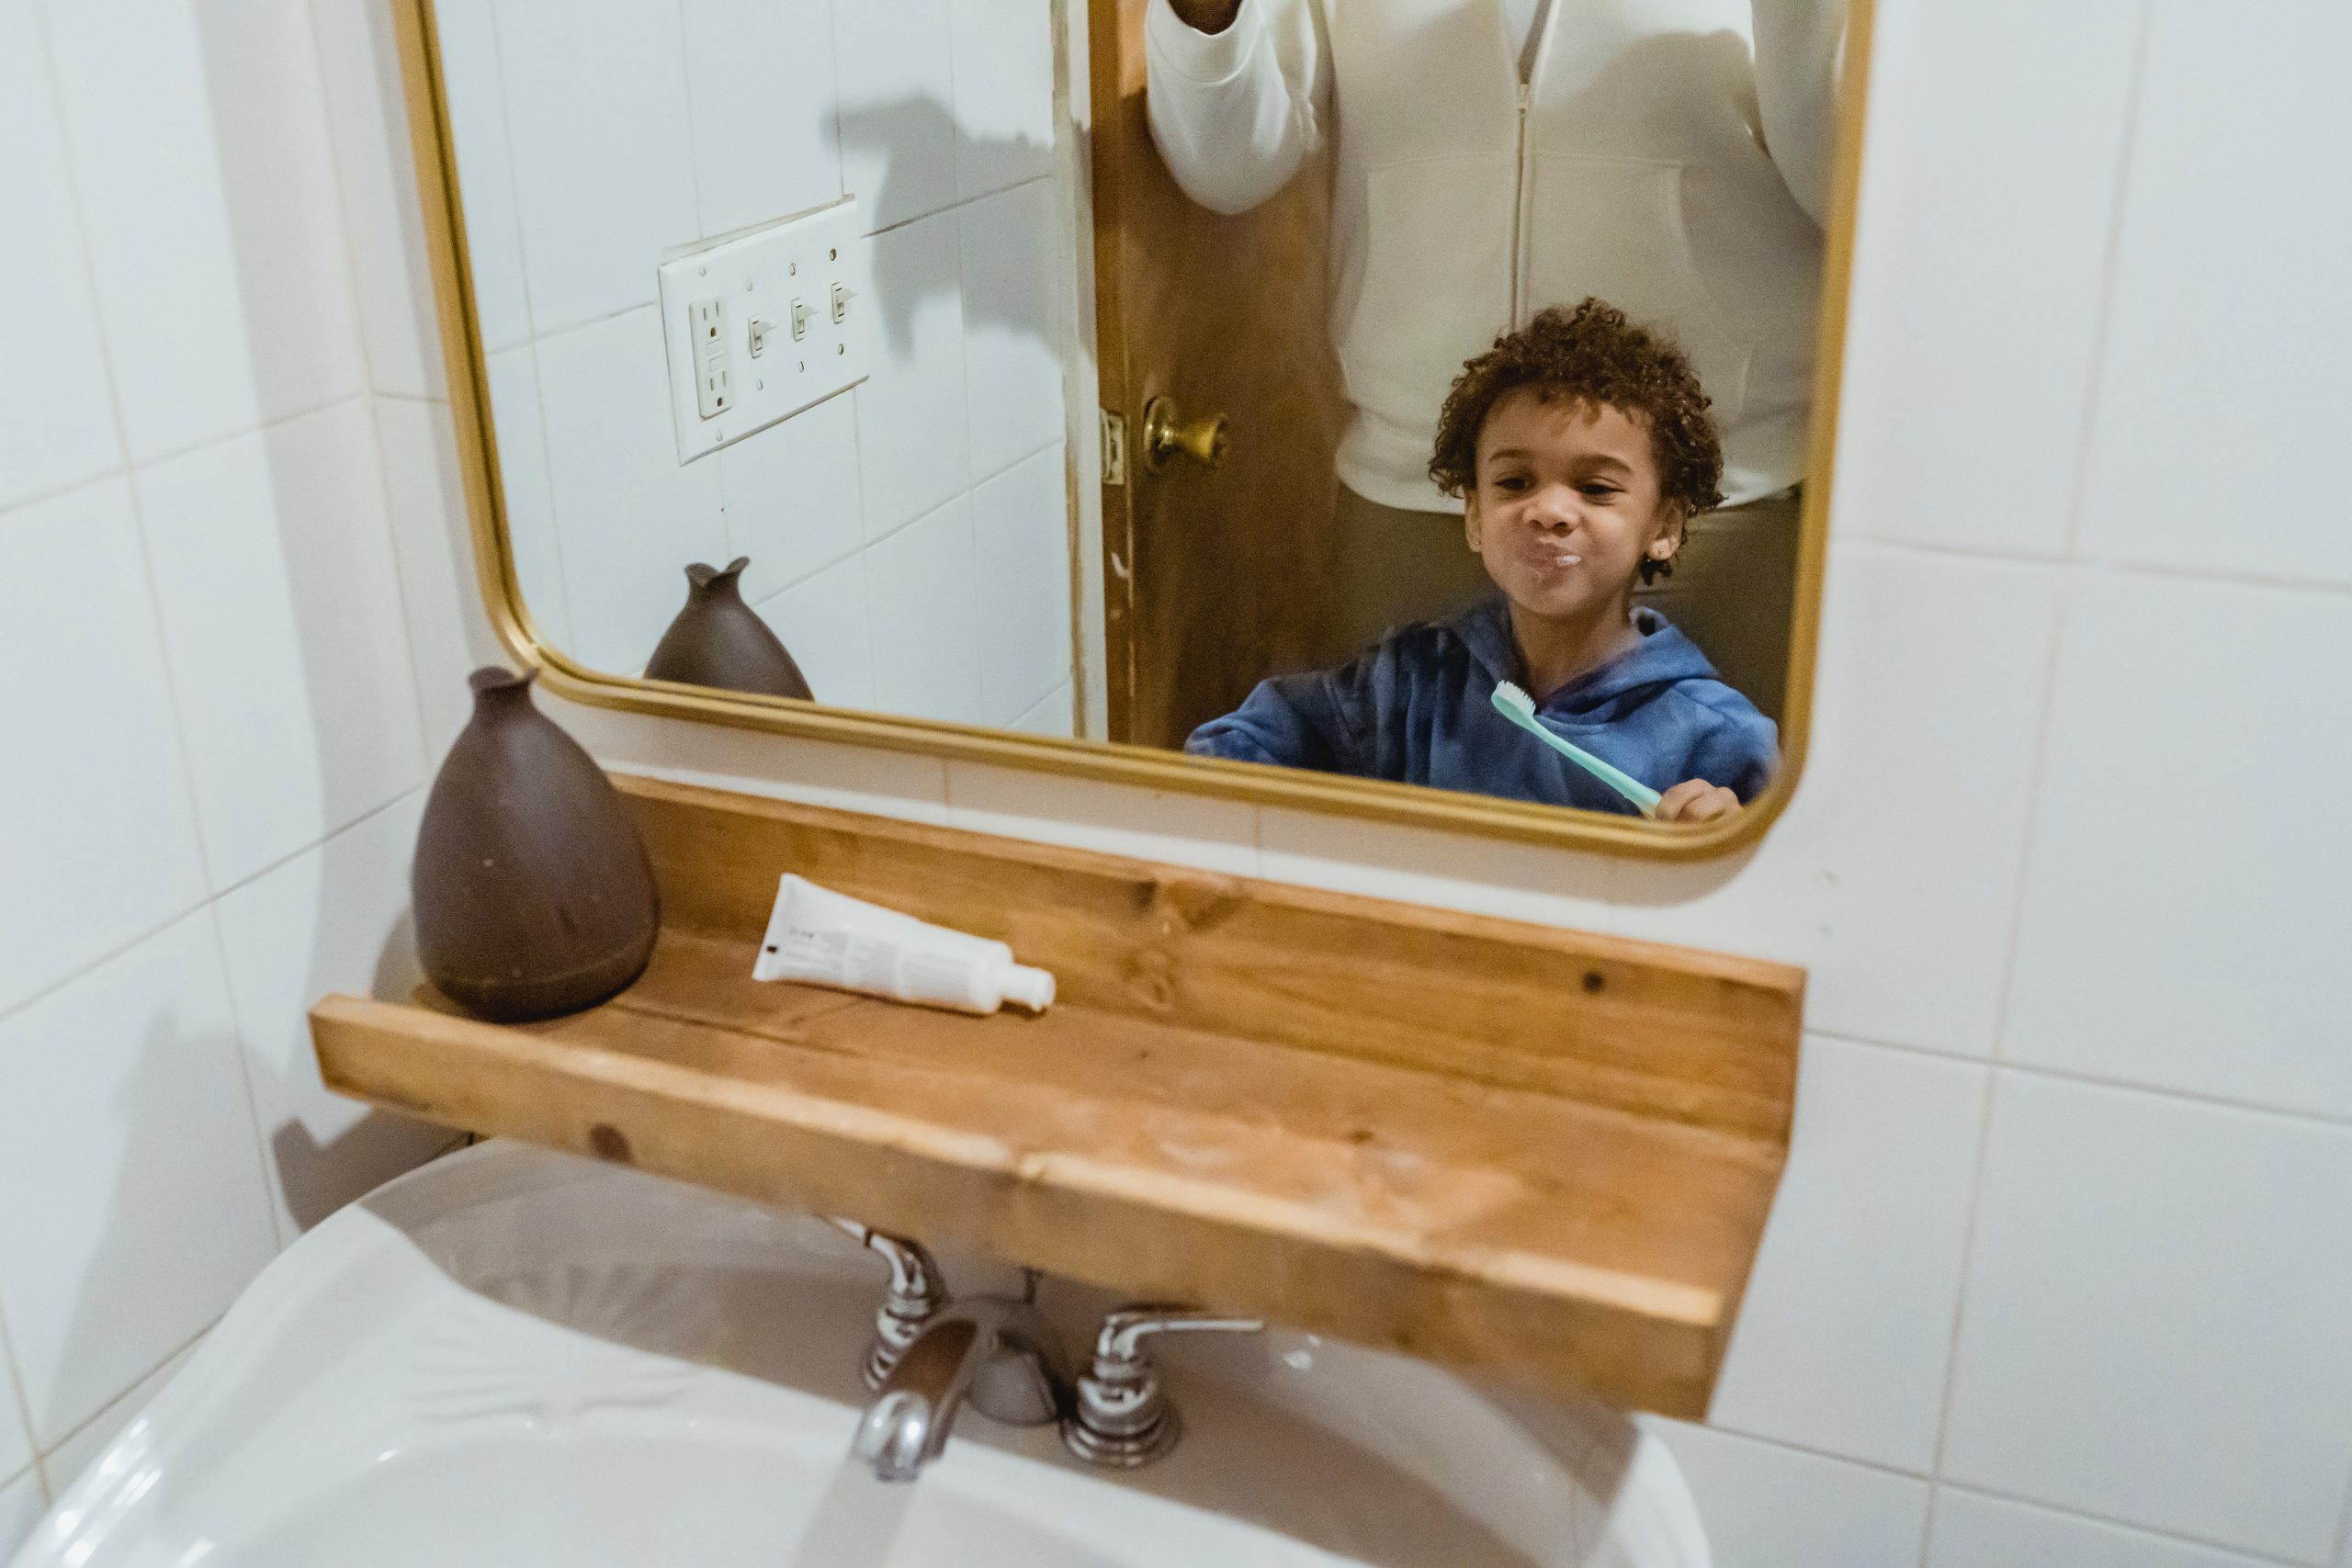 Importance of Teaching Personal Hygiene